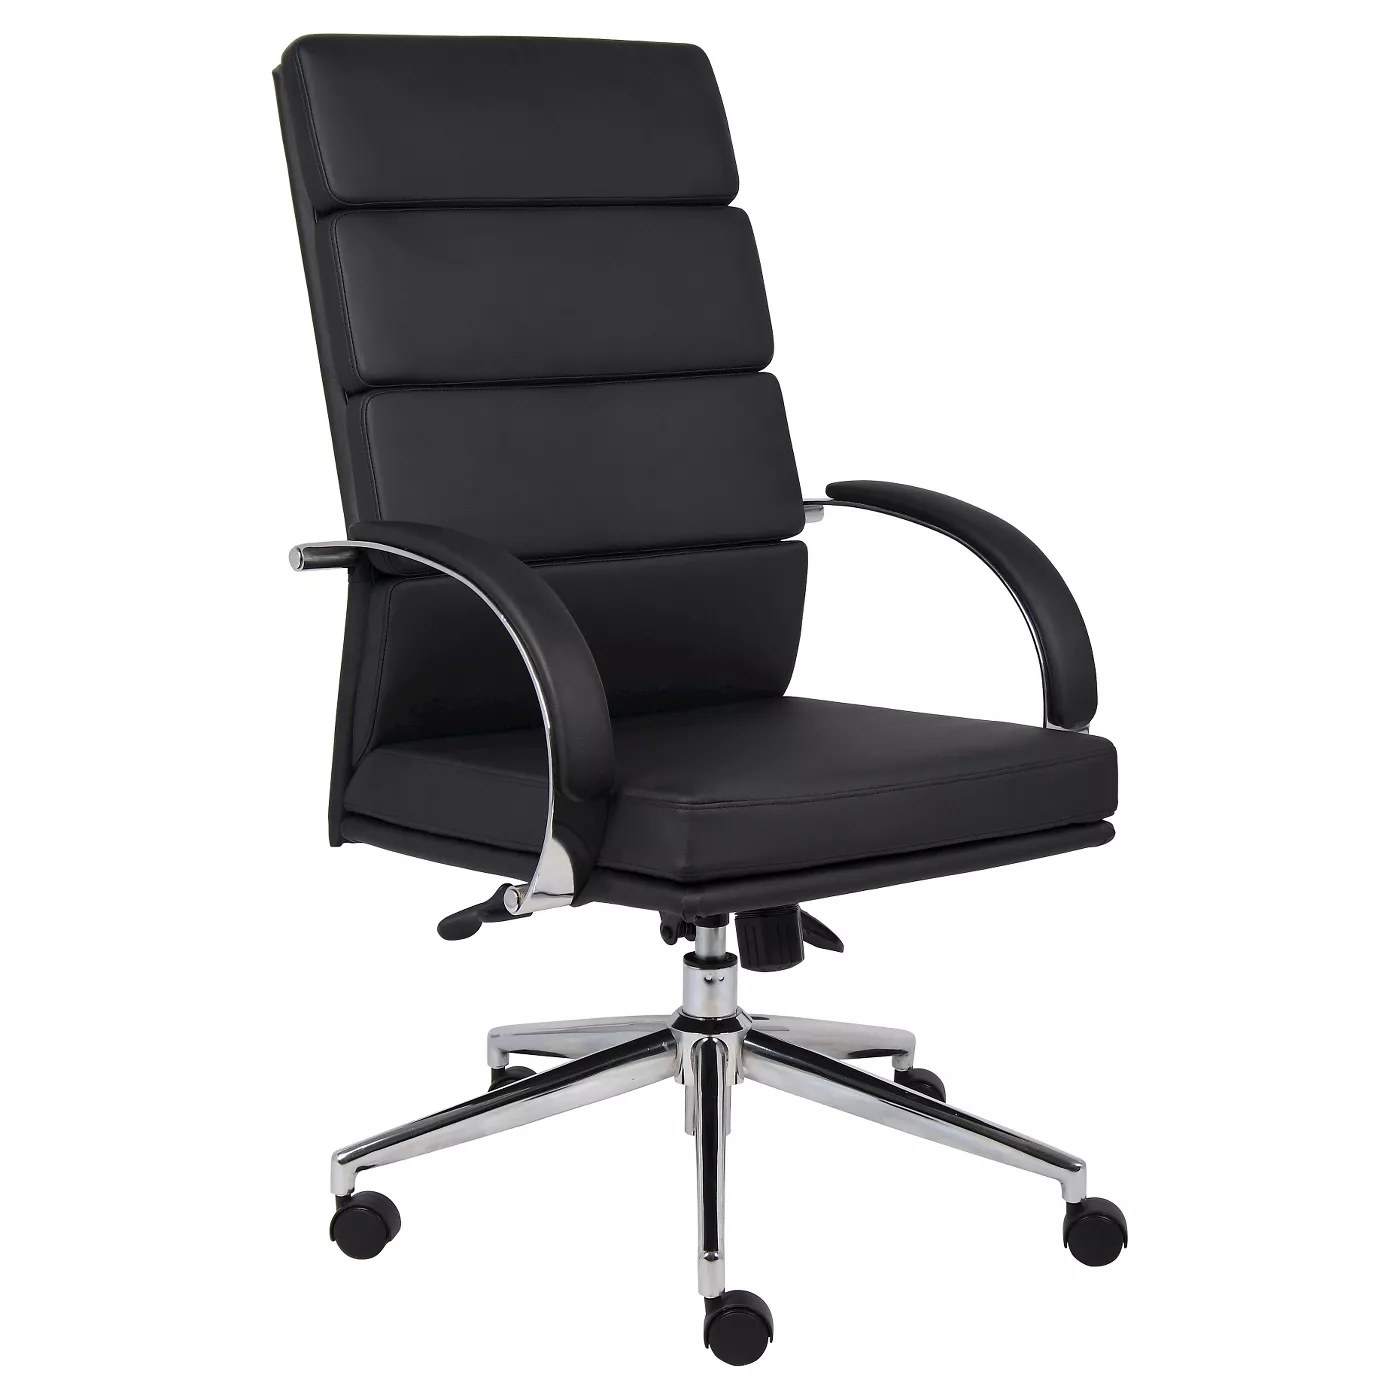 An upholstered black office chair with a high crown chrome base, padded armrests, and four adjustments